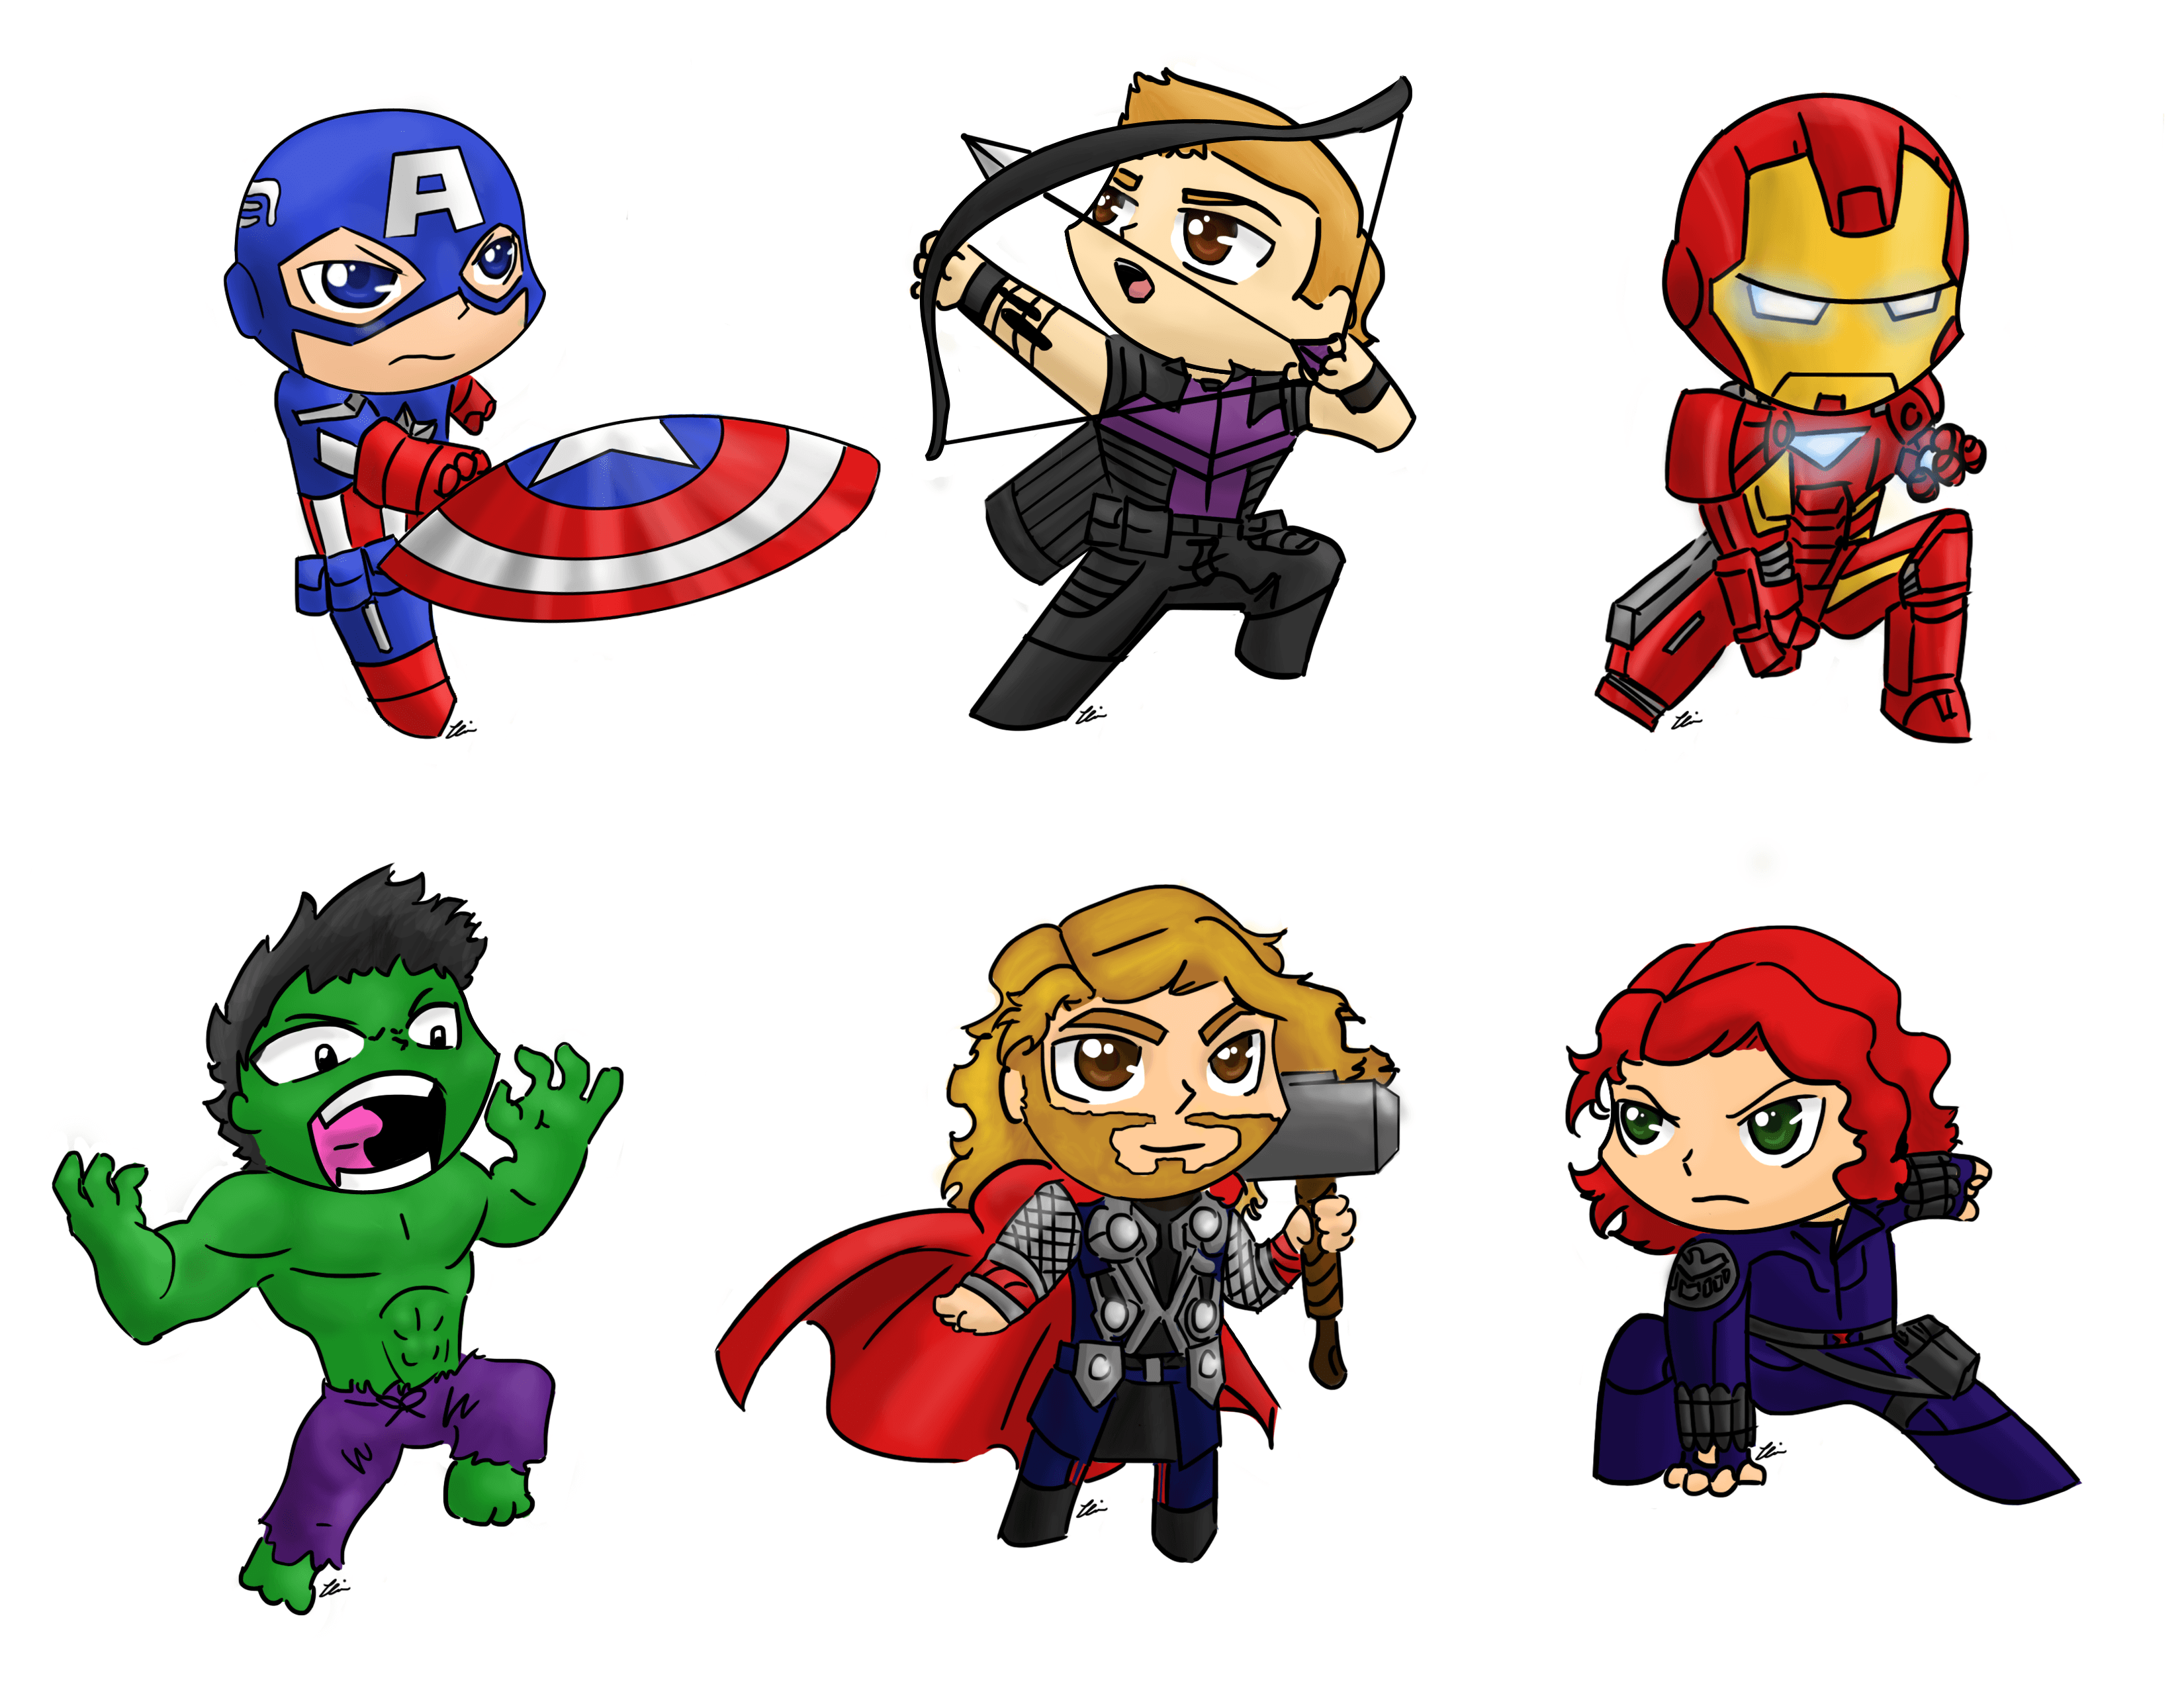 HD Wallpapers Disney Xd Avengers Coloring Pages Design3dwallpapersghdgq